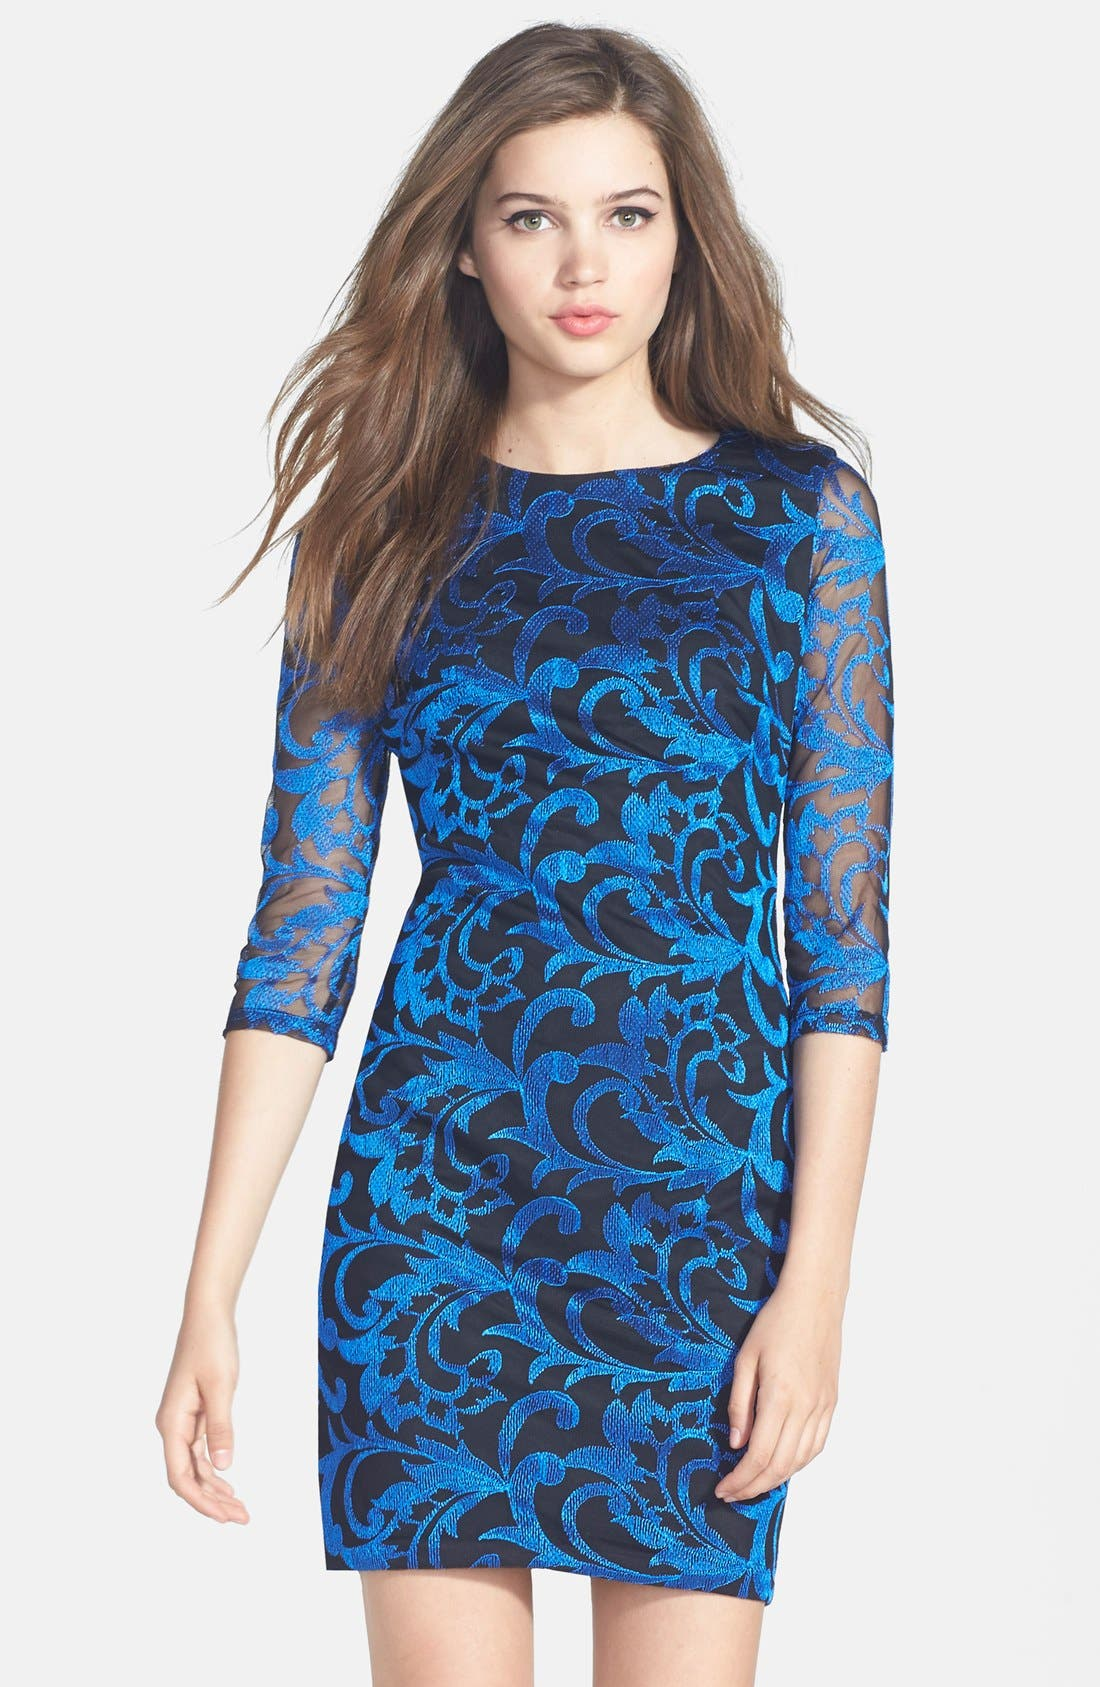 Alternate Image 1 Selected - Alexia Admor Embroidered Mesh Body-Con Dress